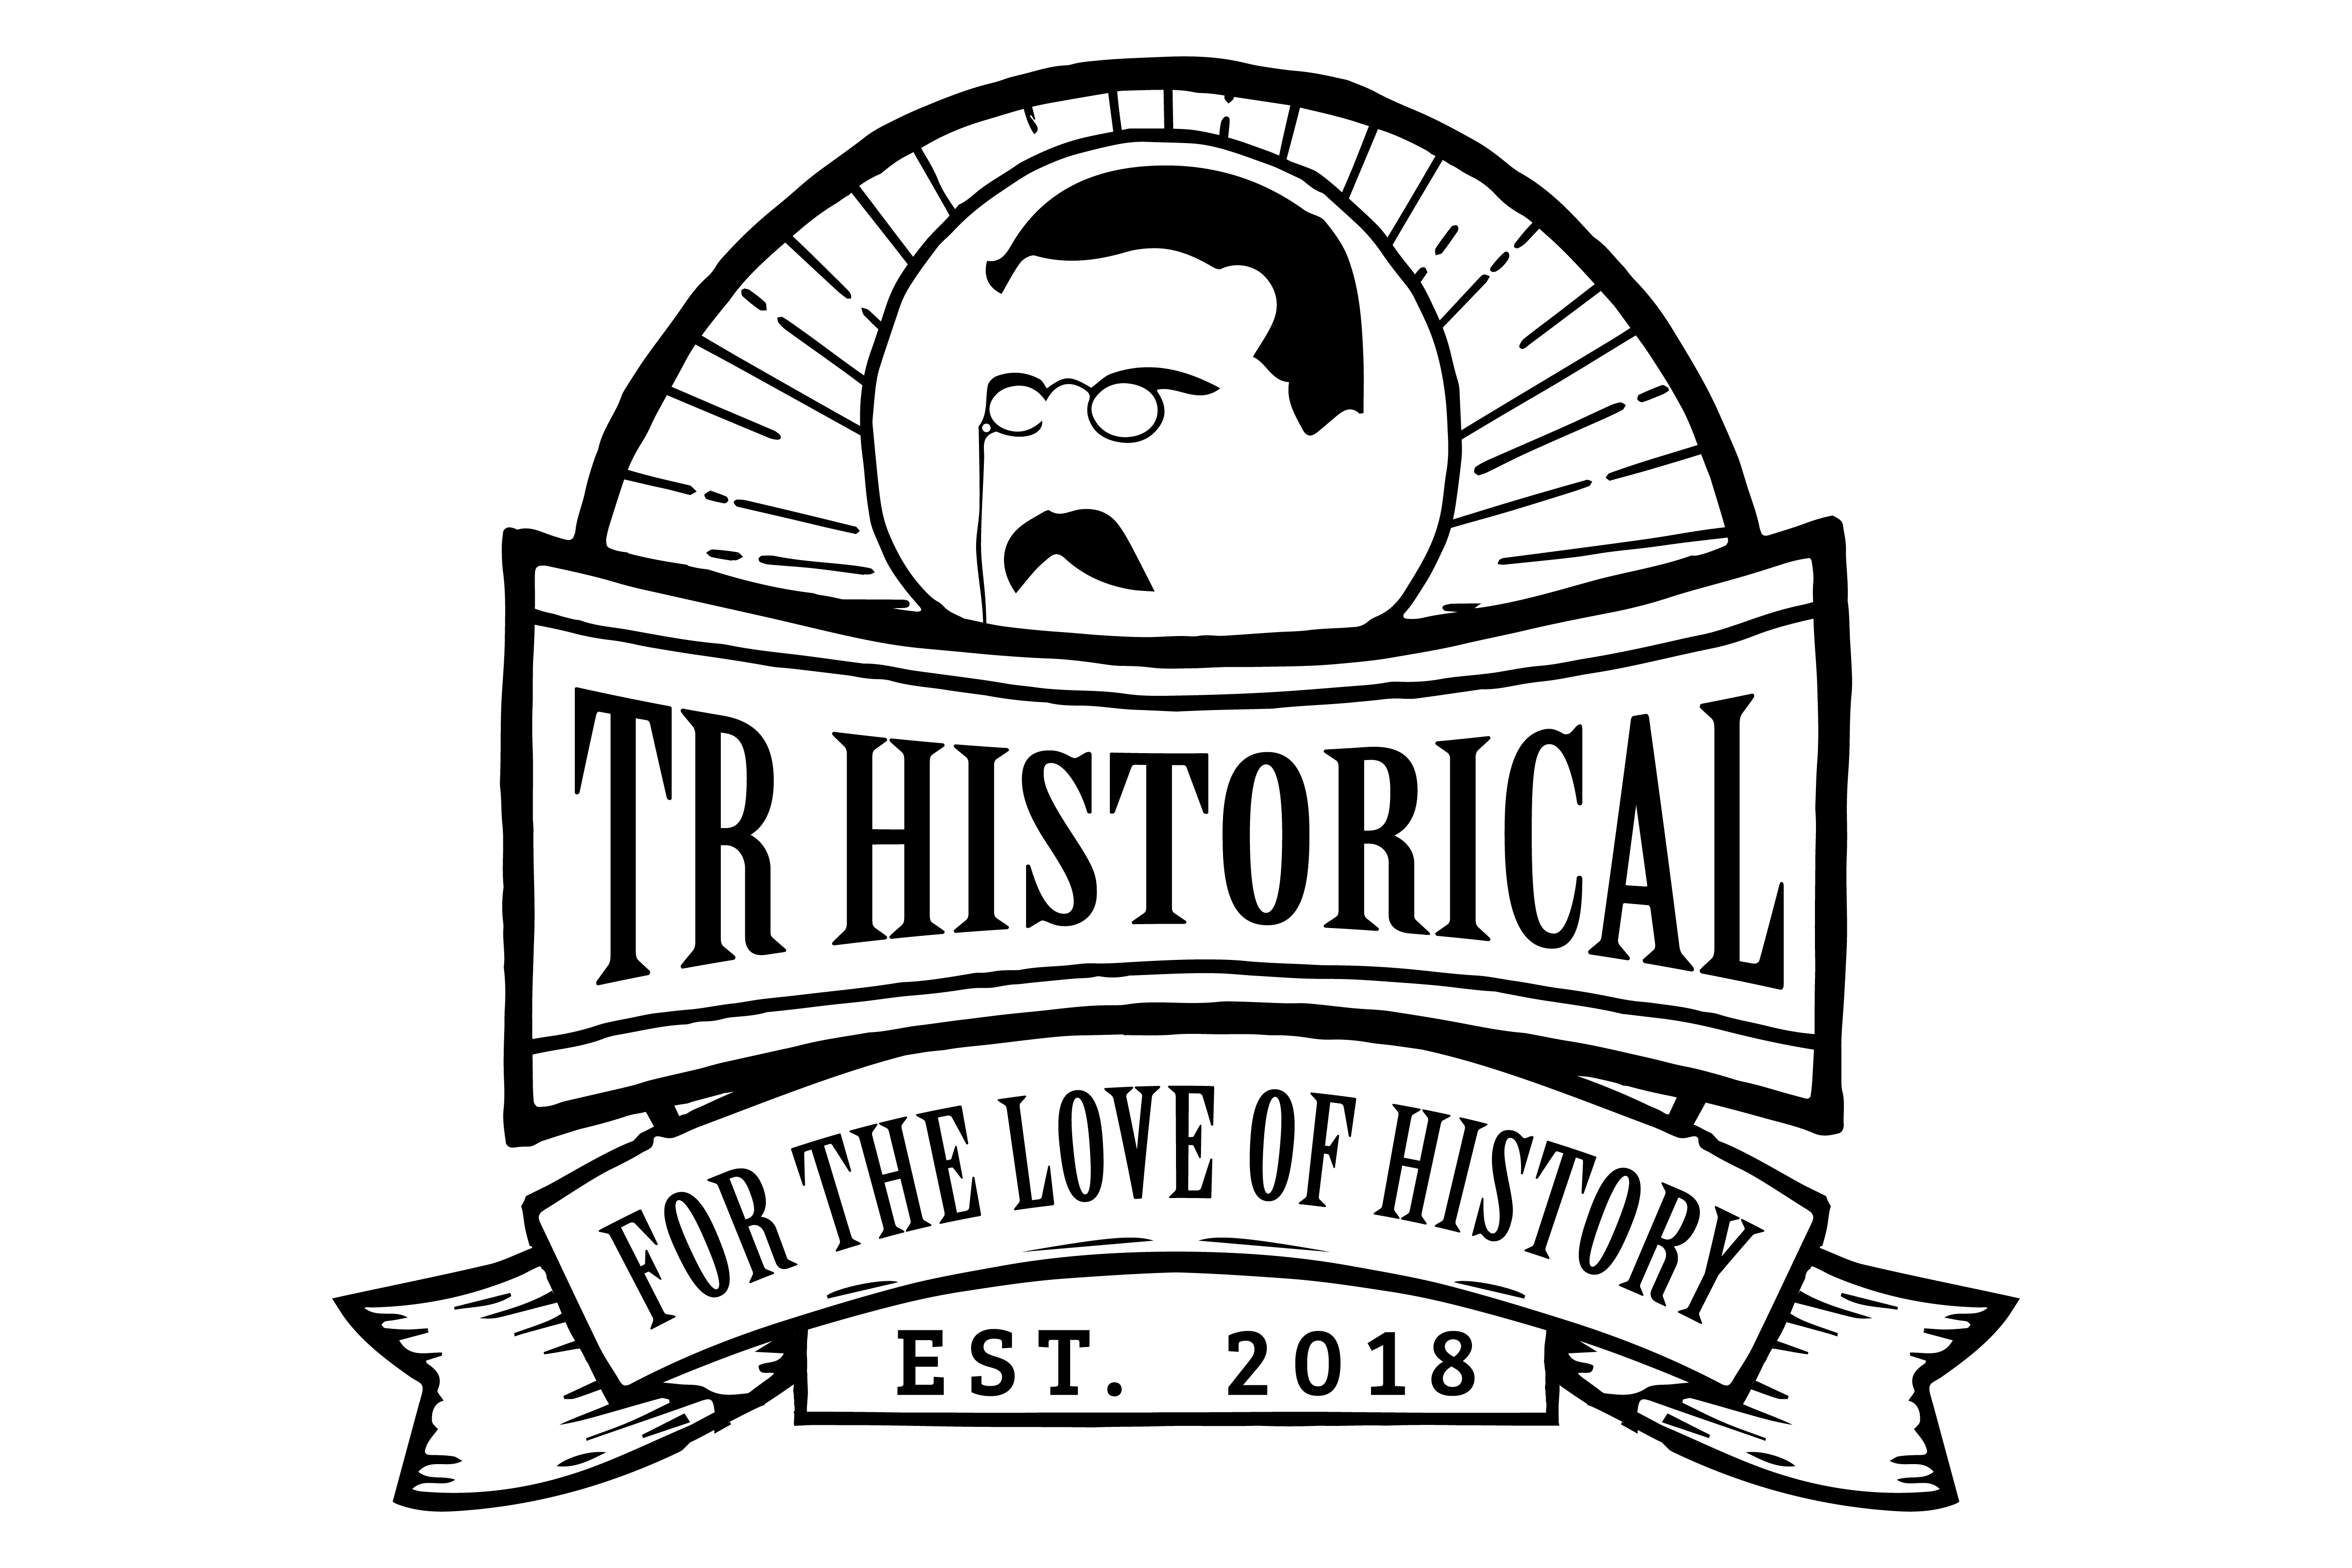 TR Historical